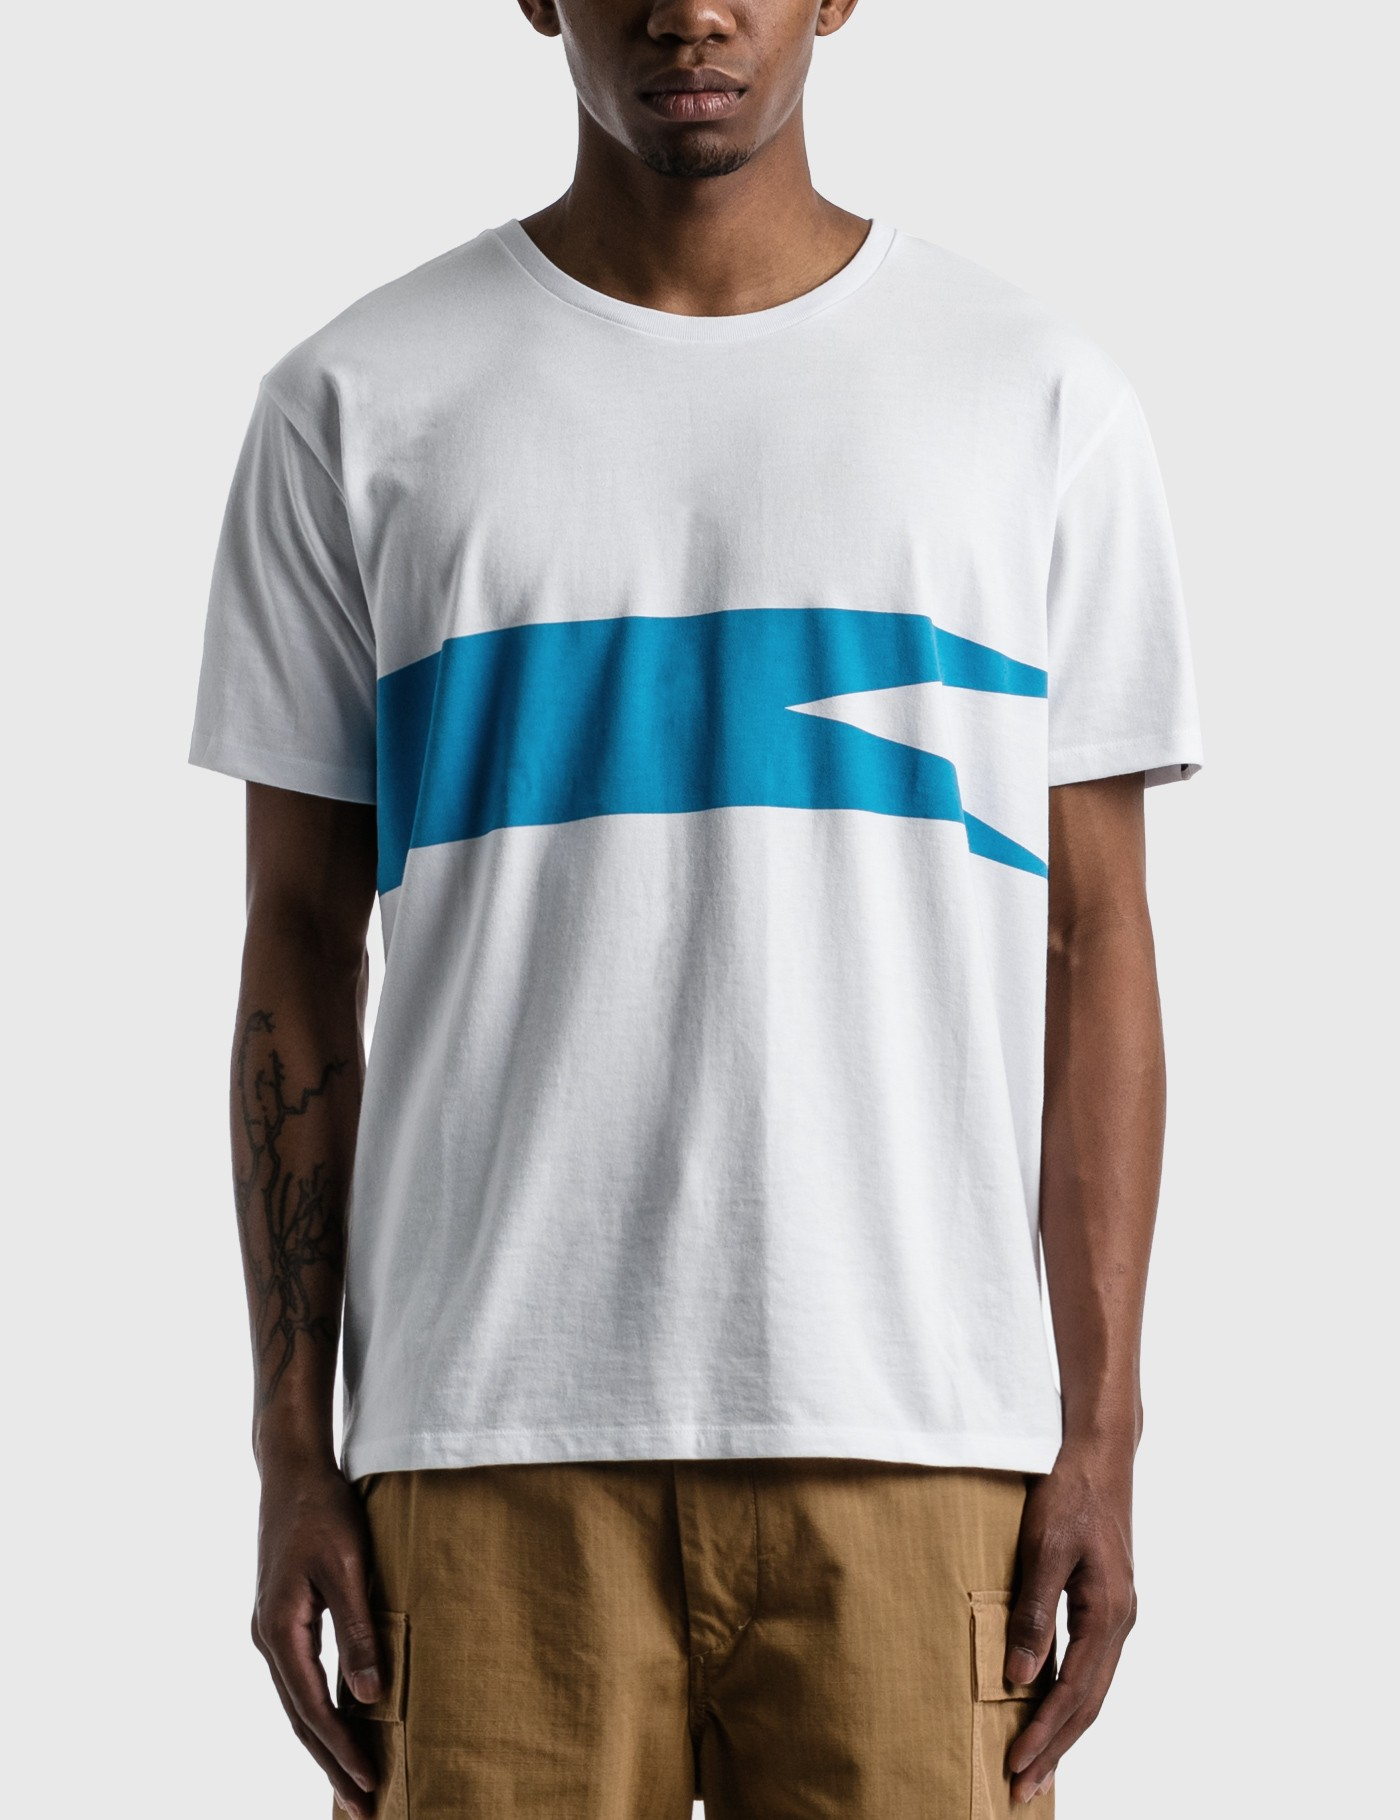 Coolmax Graphic T-shirt